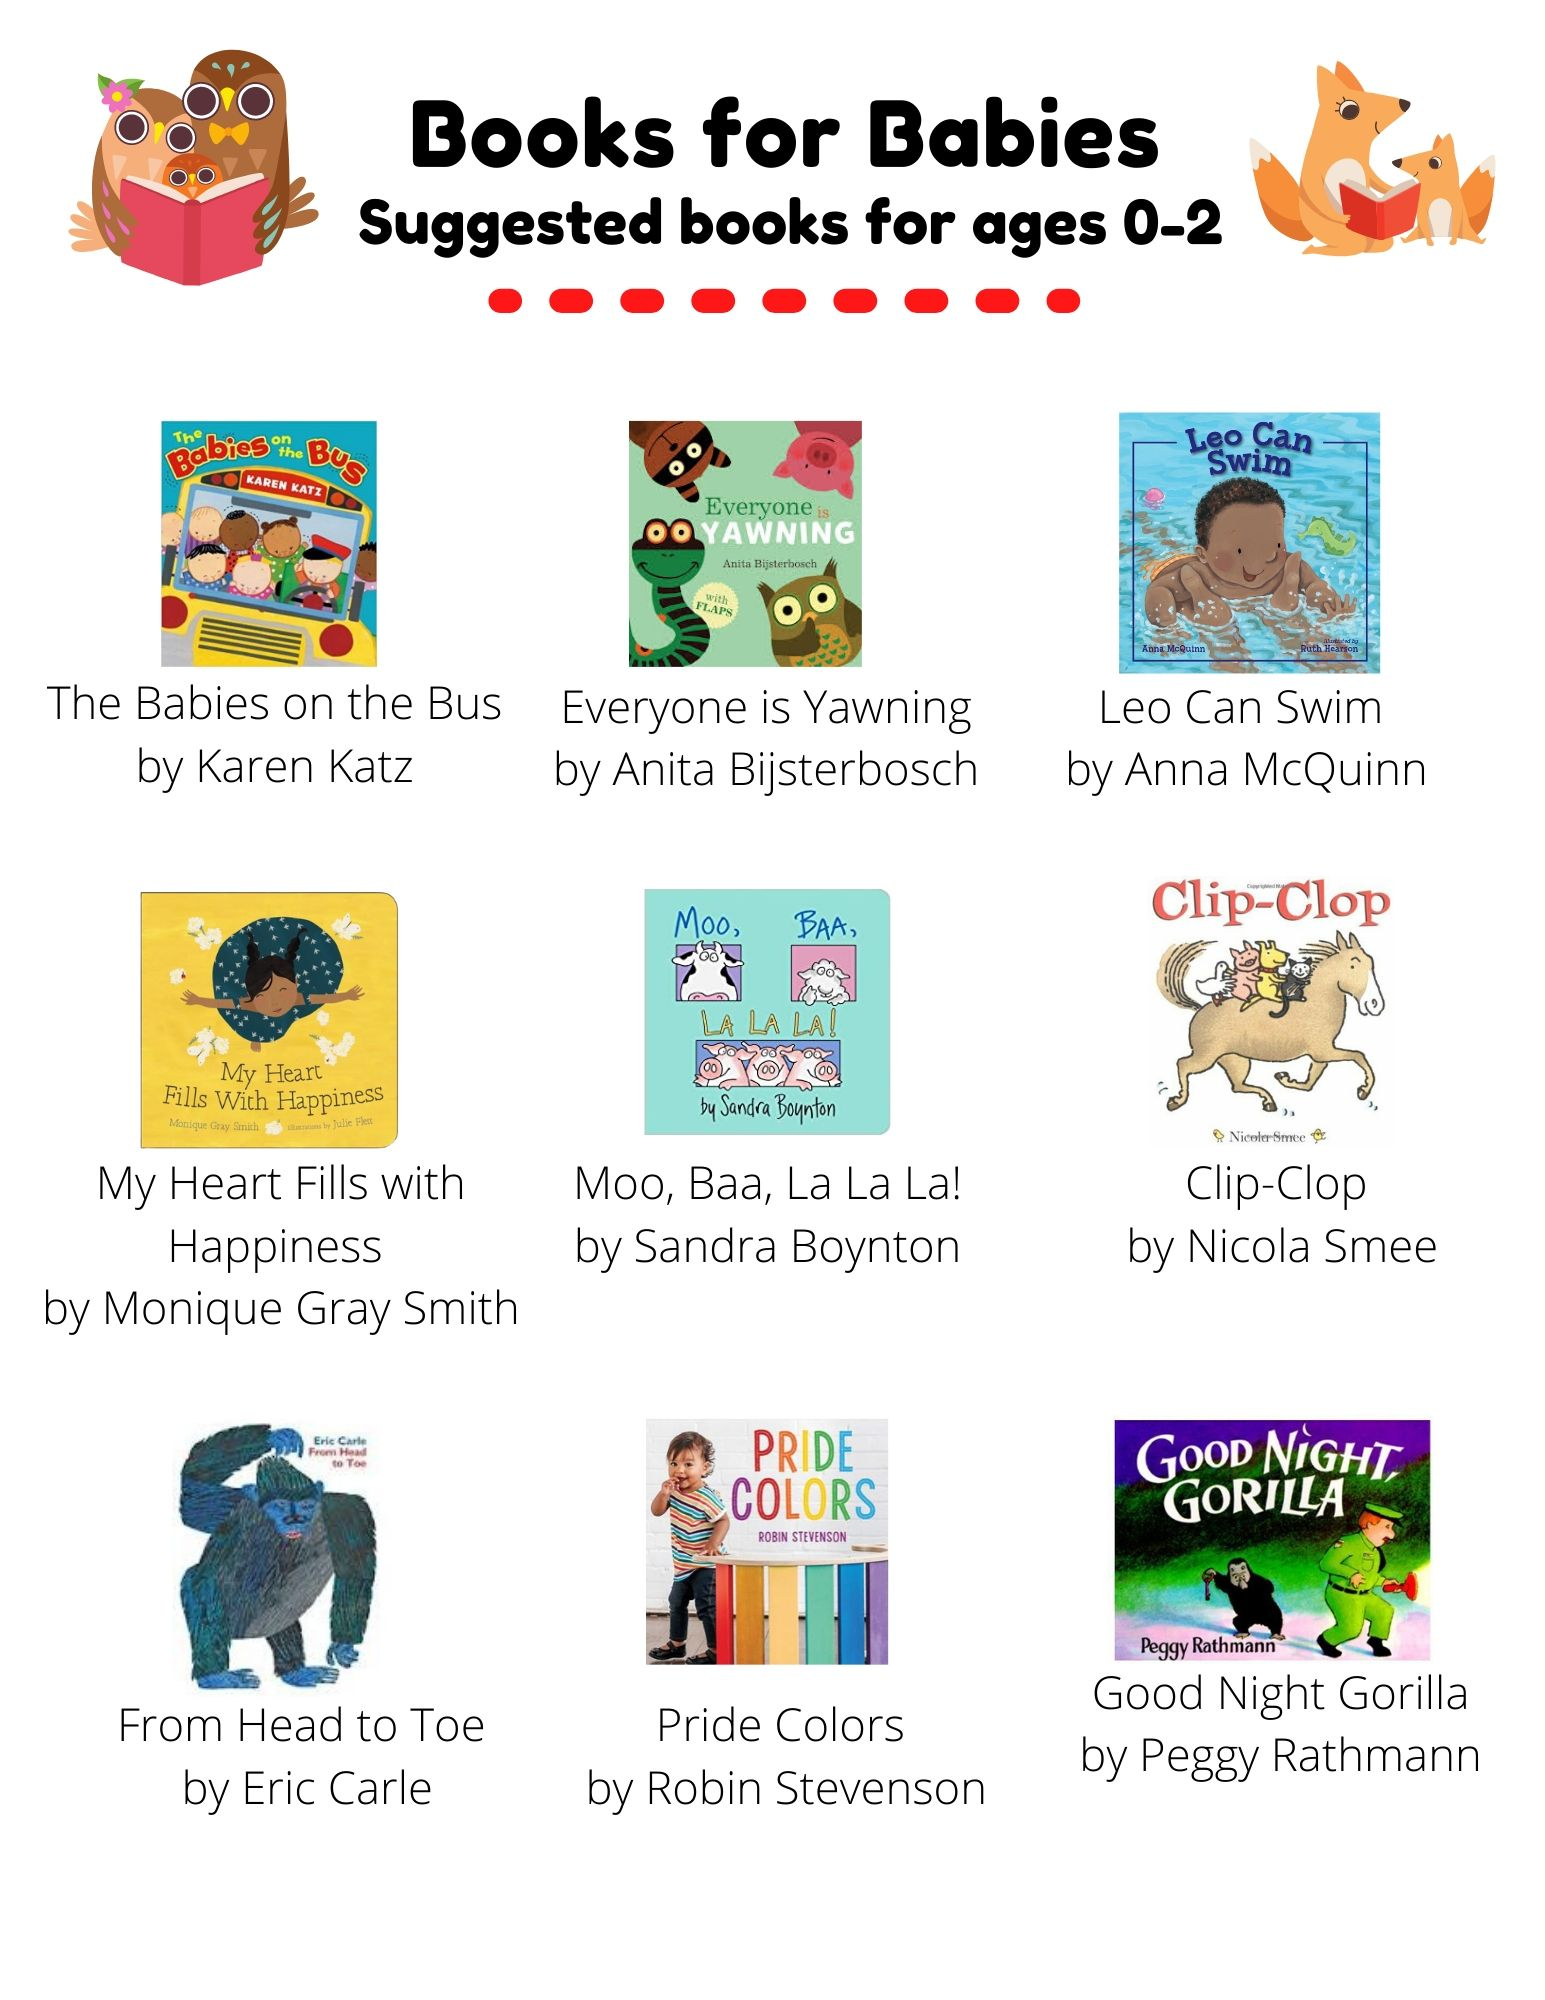 Books for Babies: Suggested books for ages 0-2. The Babies on the Bus by Karen Katz.  Everyone is Yawning by Anita Bijsterbosch. Leo Can Swim  by Anna McQuinn. My Heart Fills with Happiness  by Monique Gray Smith.  Moo, Baa, La La La! by Sandra Boynton. Clip-Clop  by Nicola Smee. Pride Colors  by Robin Stevenson. From Head to Toe  by Eric Carle.  Good Night Gorilla by Peggy Rathmann. Guess How Much  I Love You  by Sam McBratney. Your Nose! by Sandra Boynton. Library Babies by Puck. Little Panda  by Julie Abery. 12 Lucky Animals:  A Bilingual Baby Book  by Vickie Lee. winkle, Twinkle, Little Star  by Sanja Rescek. Hey Diddle Diddle by Hannah Wood. Ten Little Fingers and Ten Little Toes  by Mem Fox. B is for Baby by Atinuke. Hush Little Bunny  by David Ezra Stein. Love You Head to Toe by Ashley Barron. Moon Babies by Karen Jameson.